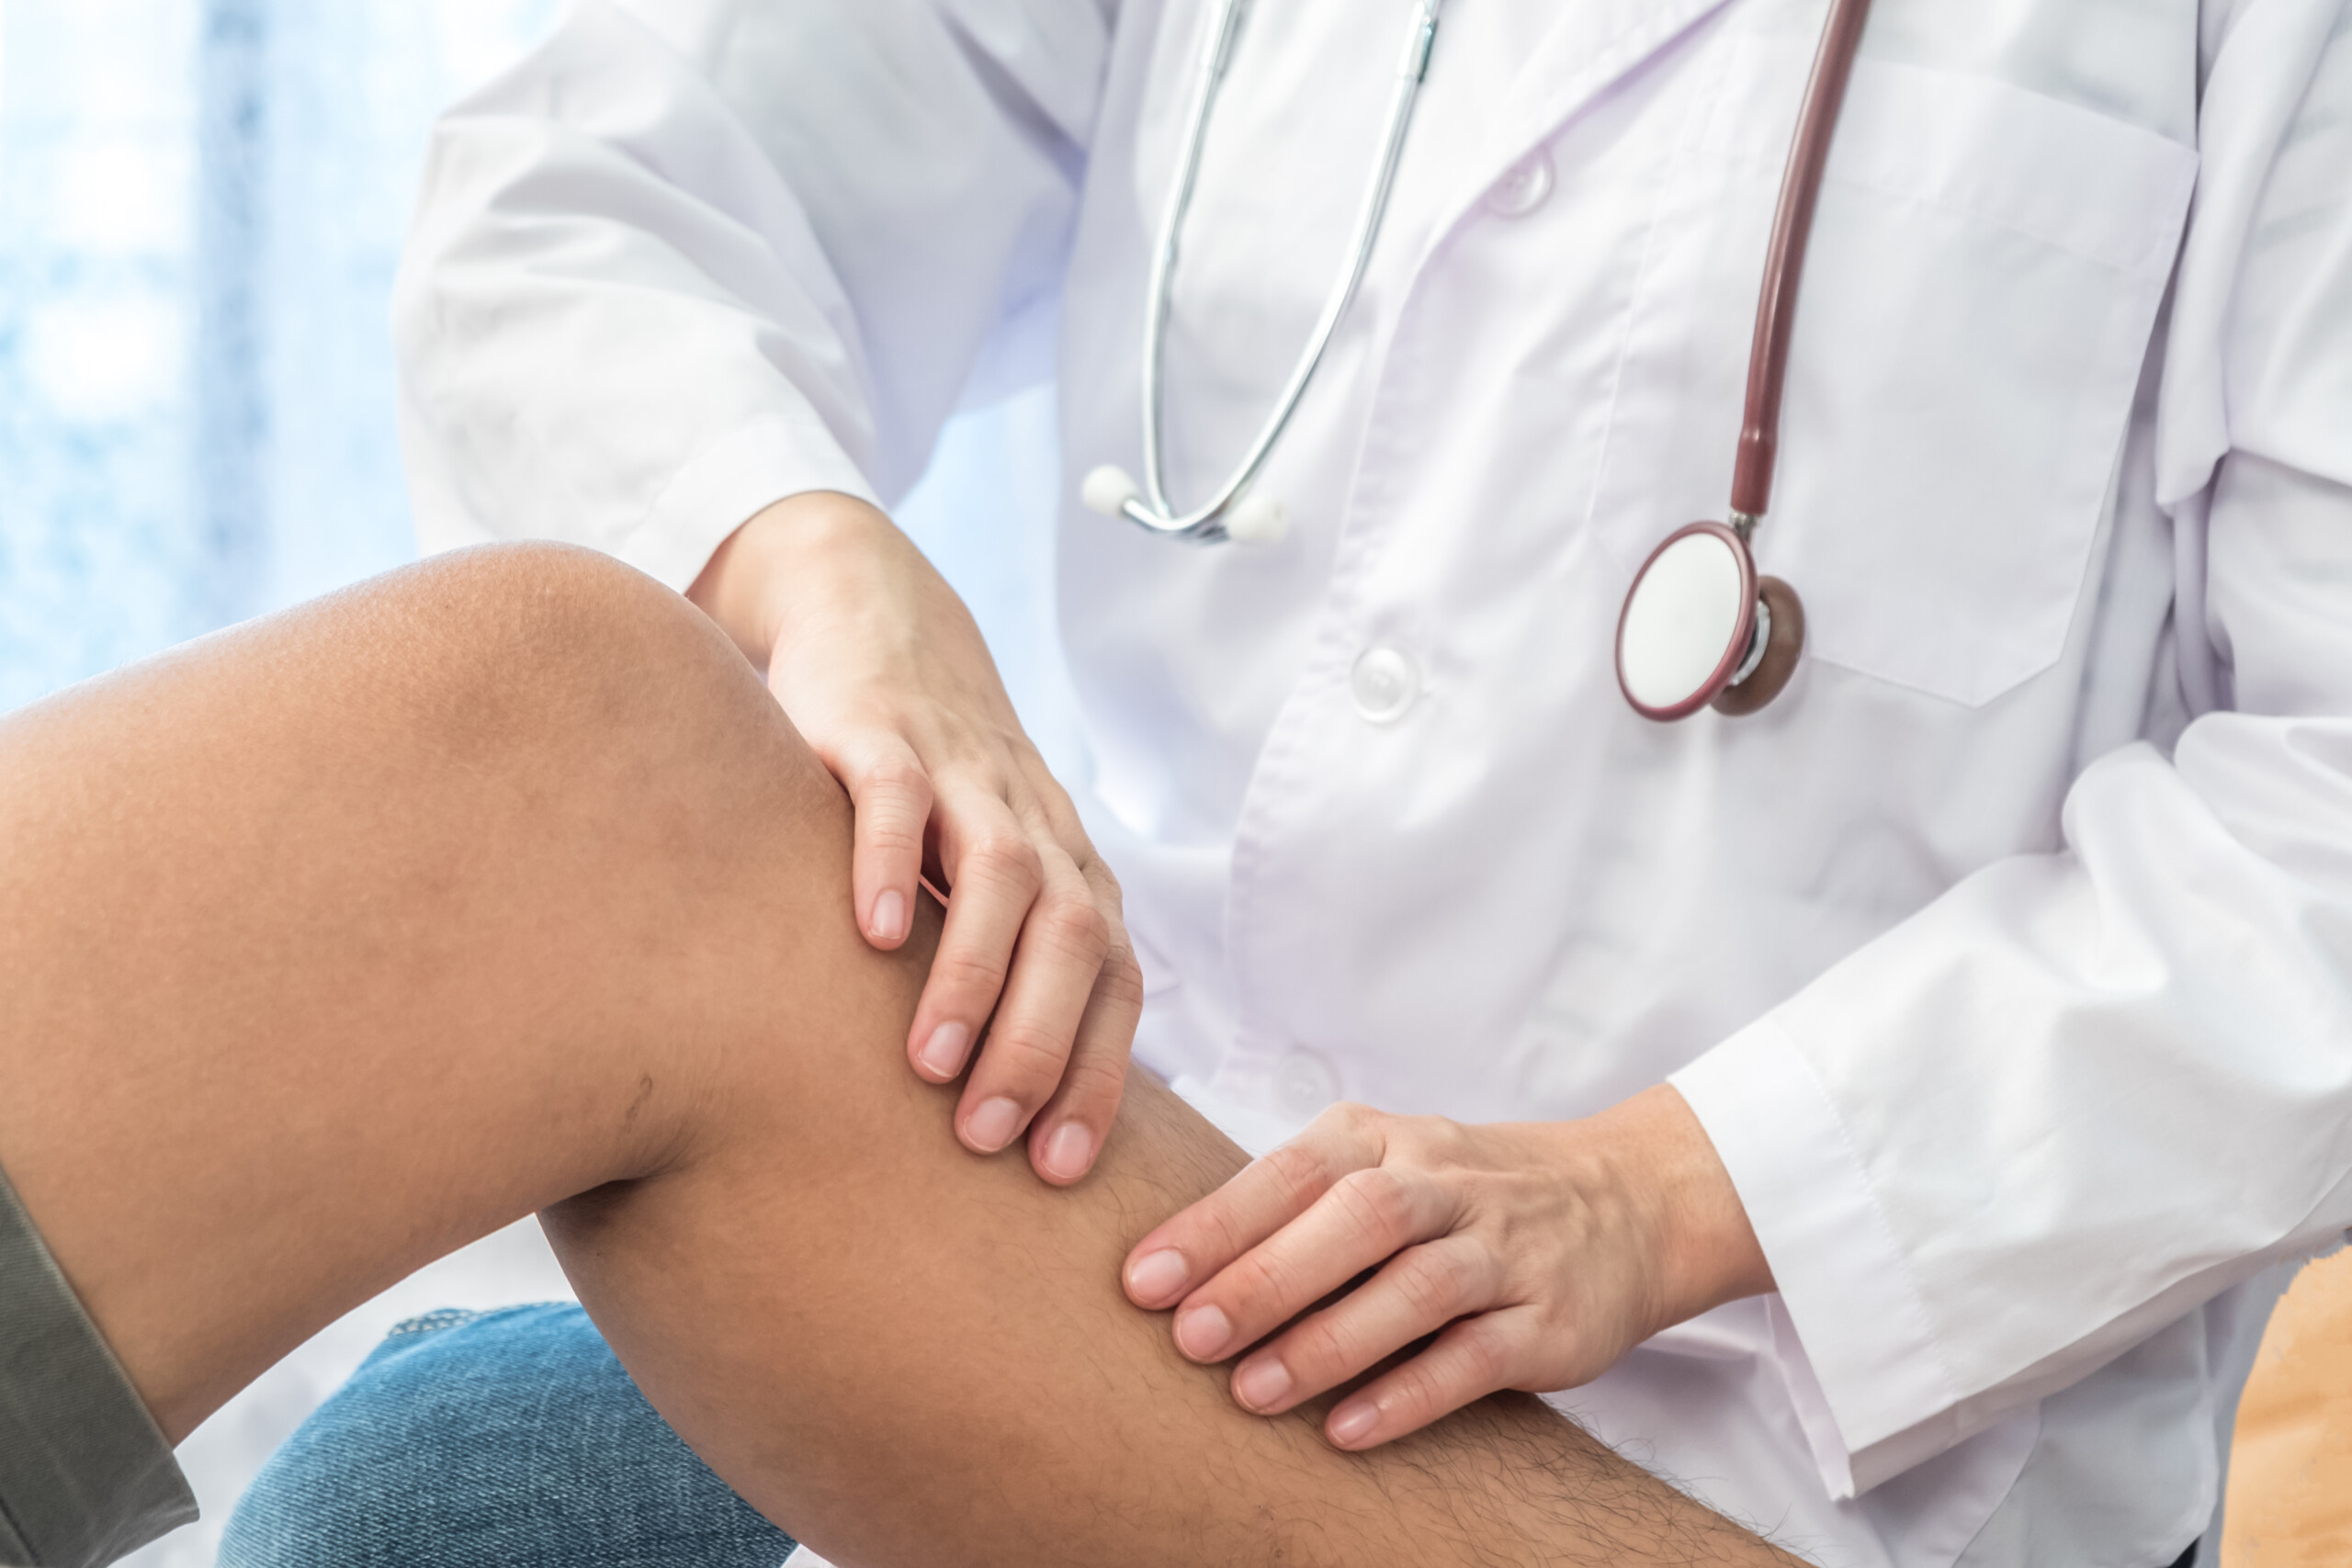 Can a Low Back Problem Cause Pain in the Shins?